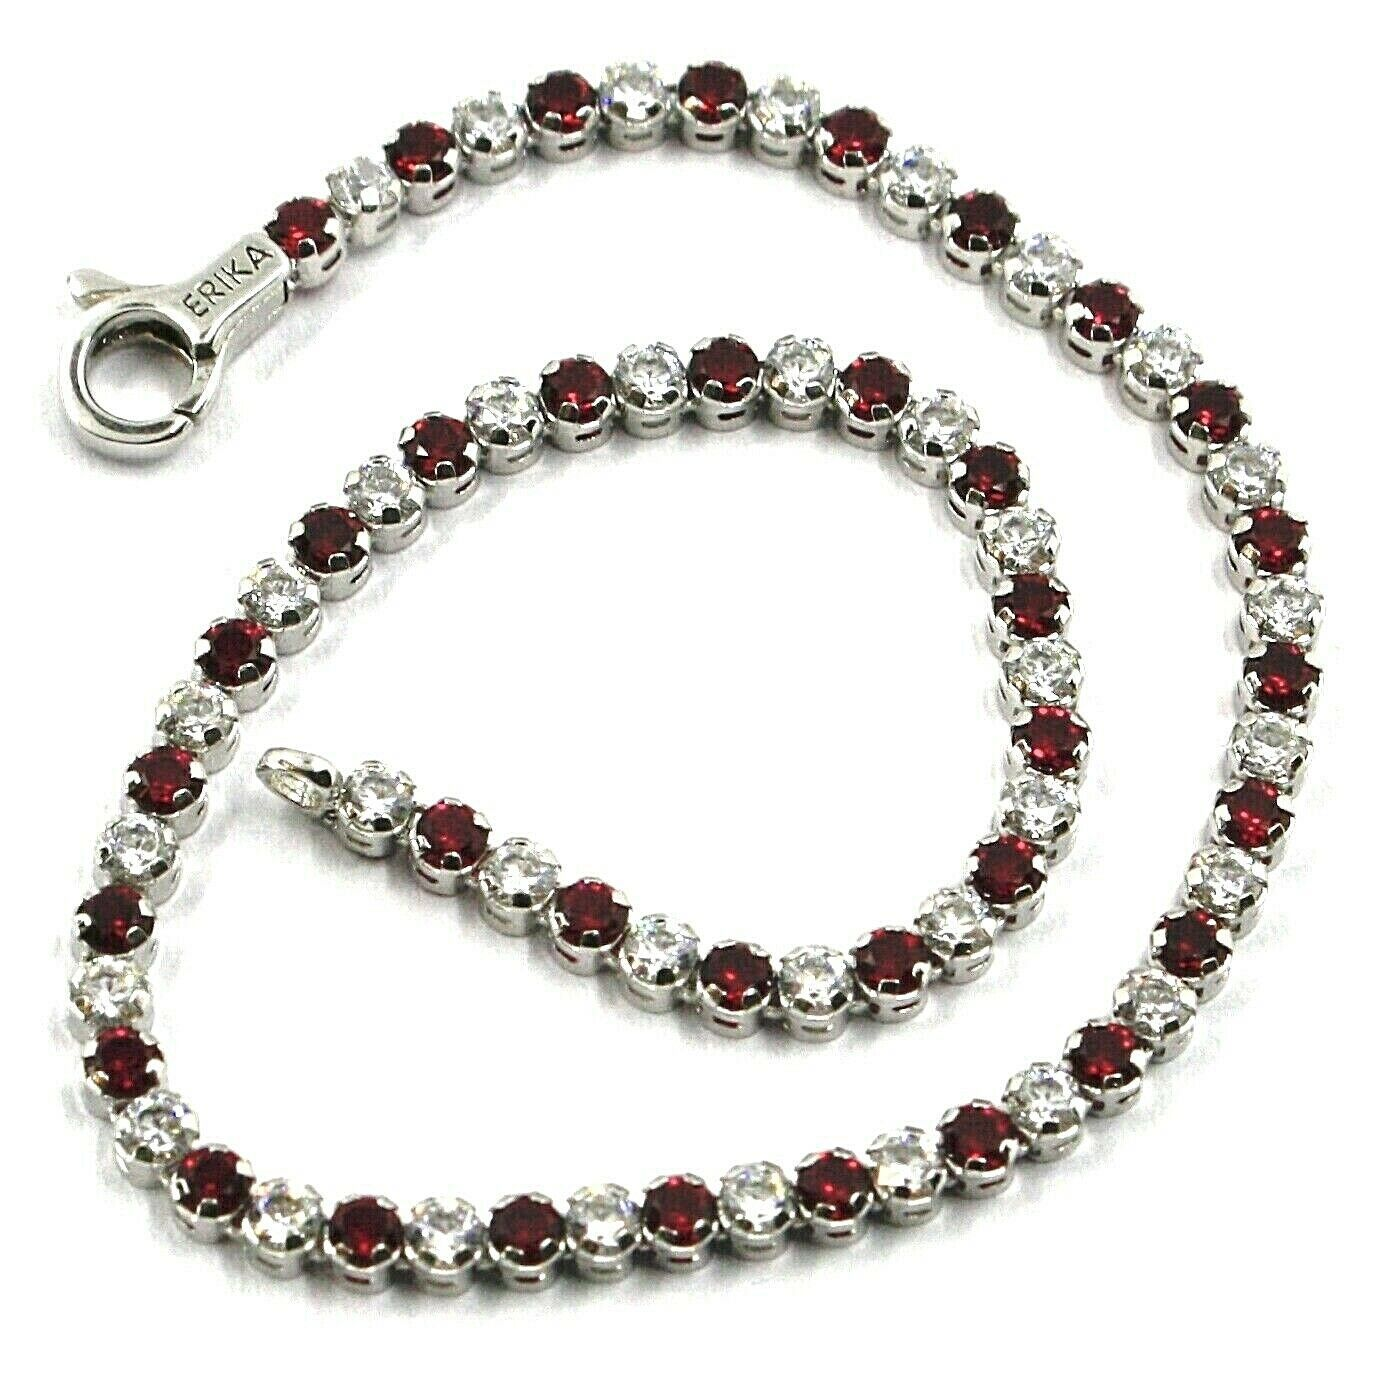 18K WHITE GOLD TENNIS BRACELET RED CUBIC ZIRCONIA 2.5mm LOBSTER CLASP CLOSURE